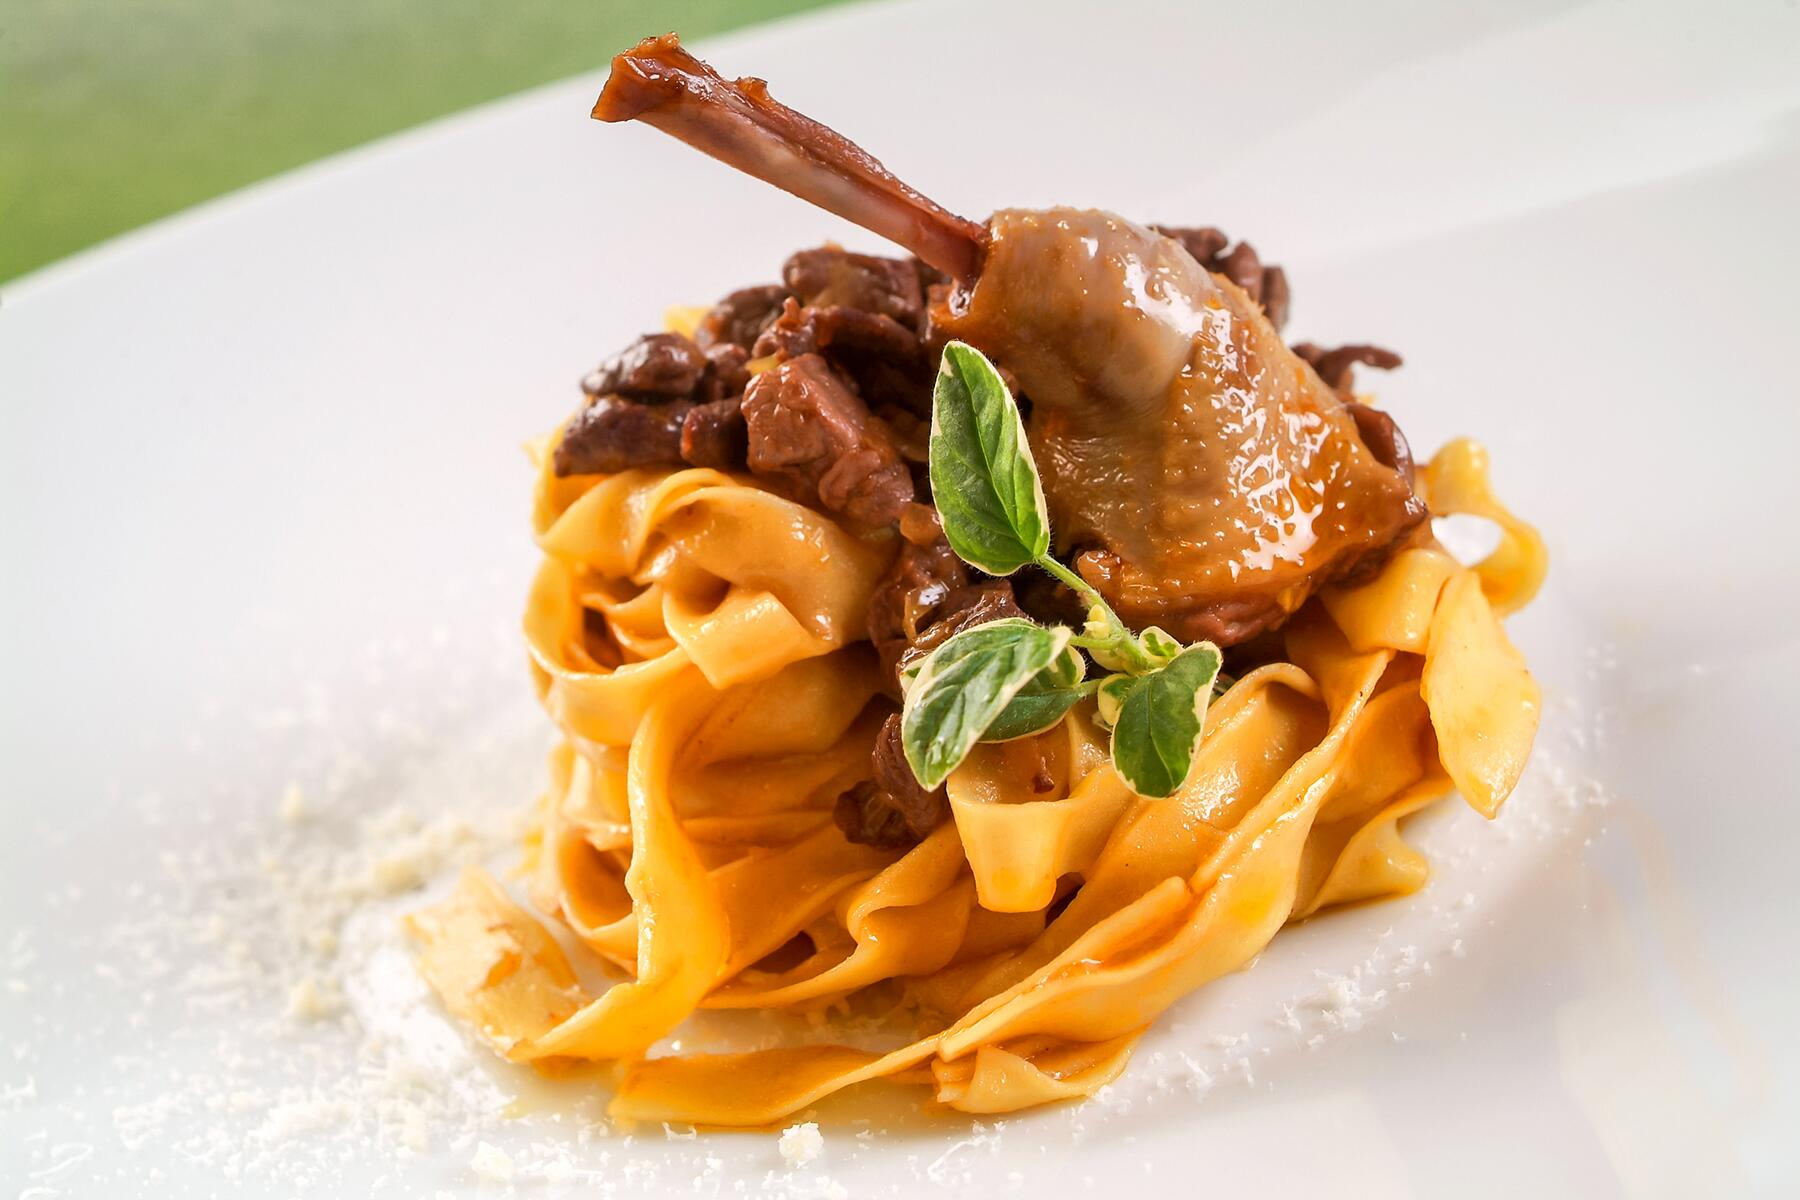 20 Must-Eat Authentic Regional Foods of Italy